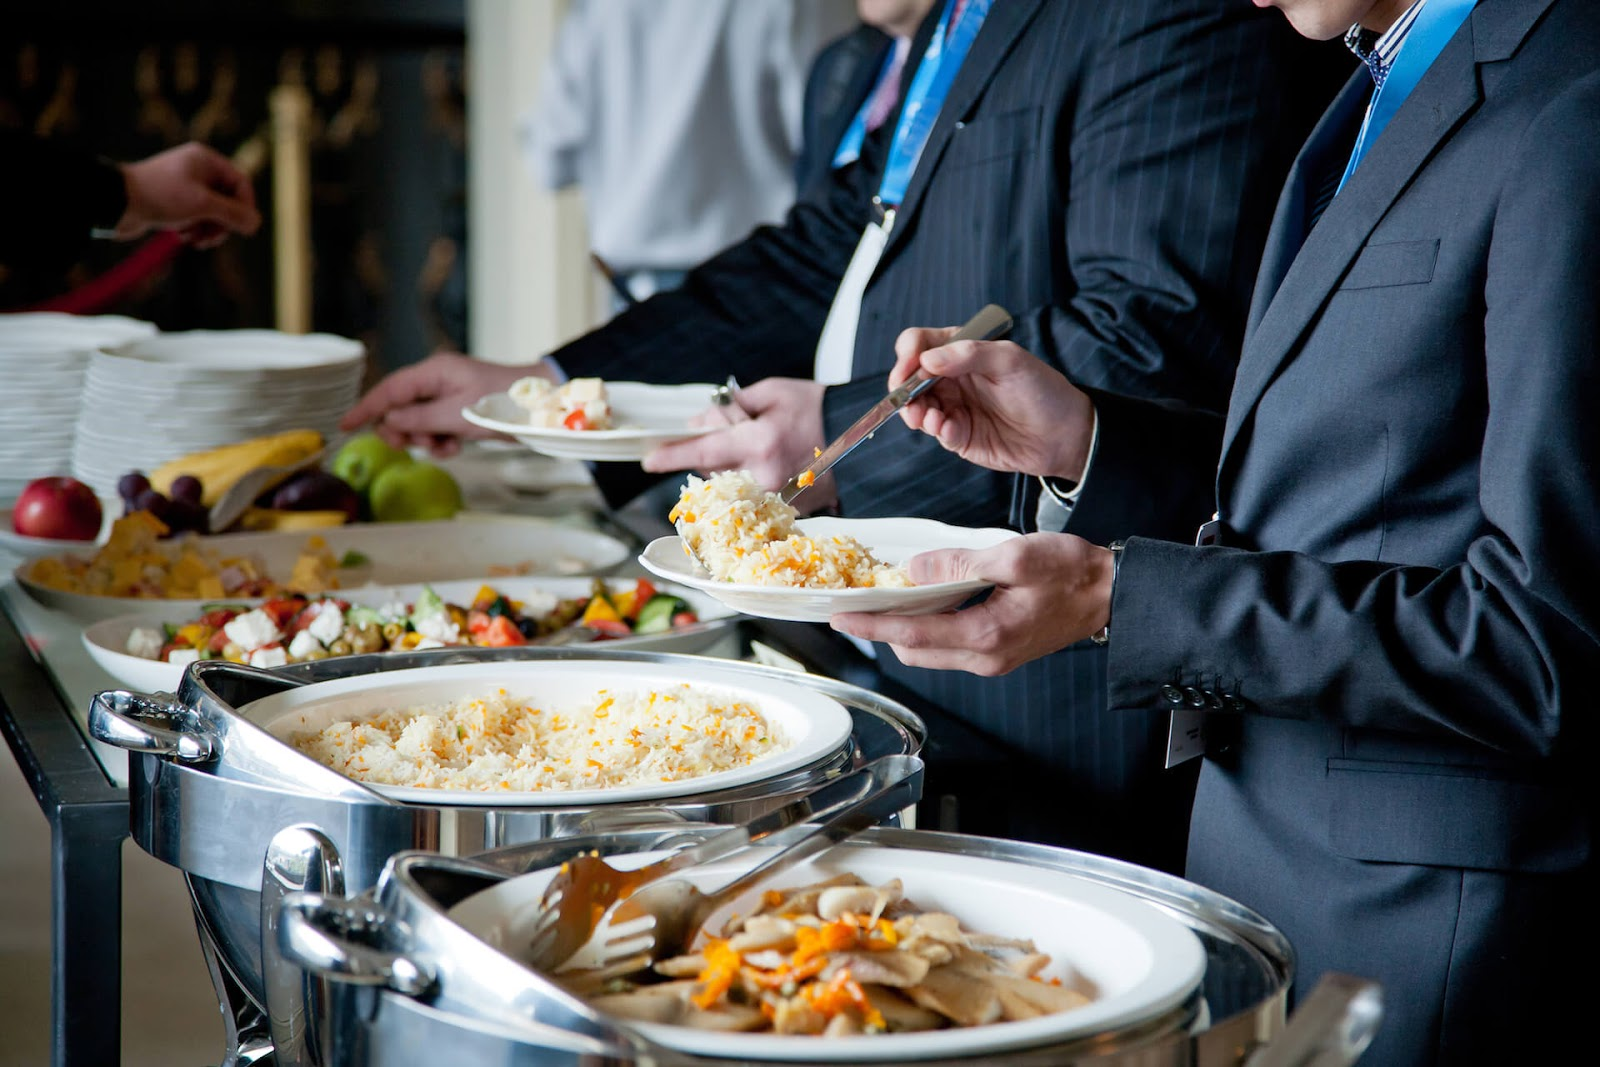 Men in suits moving through a buffet